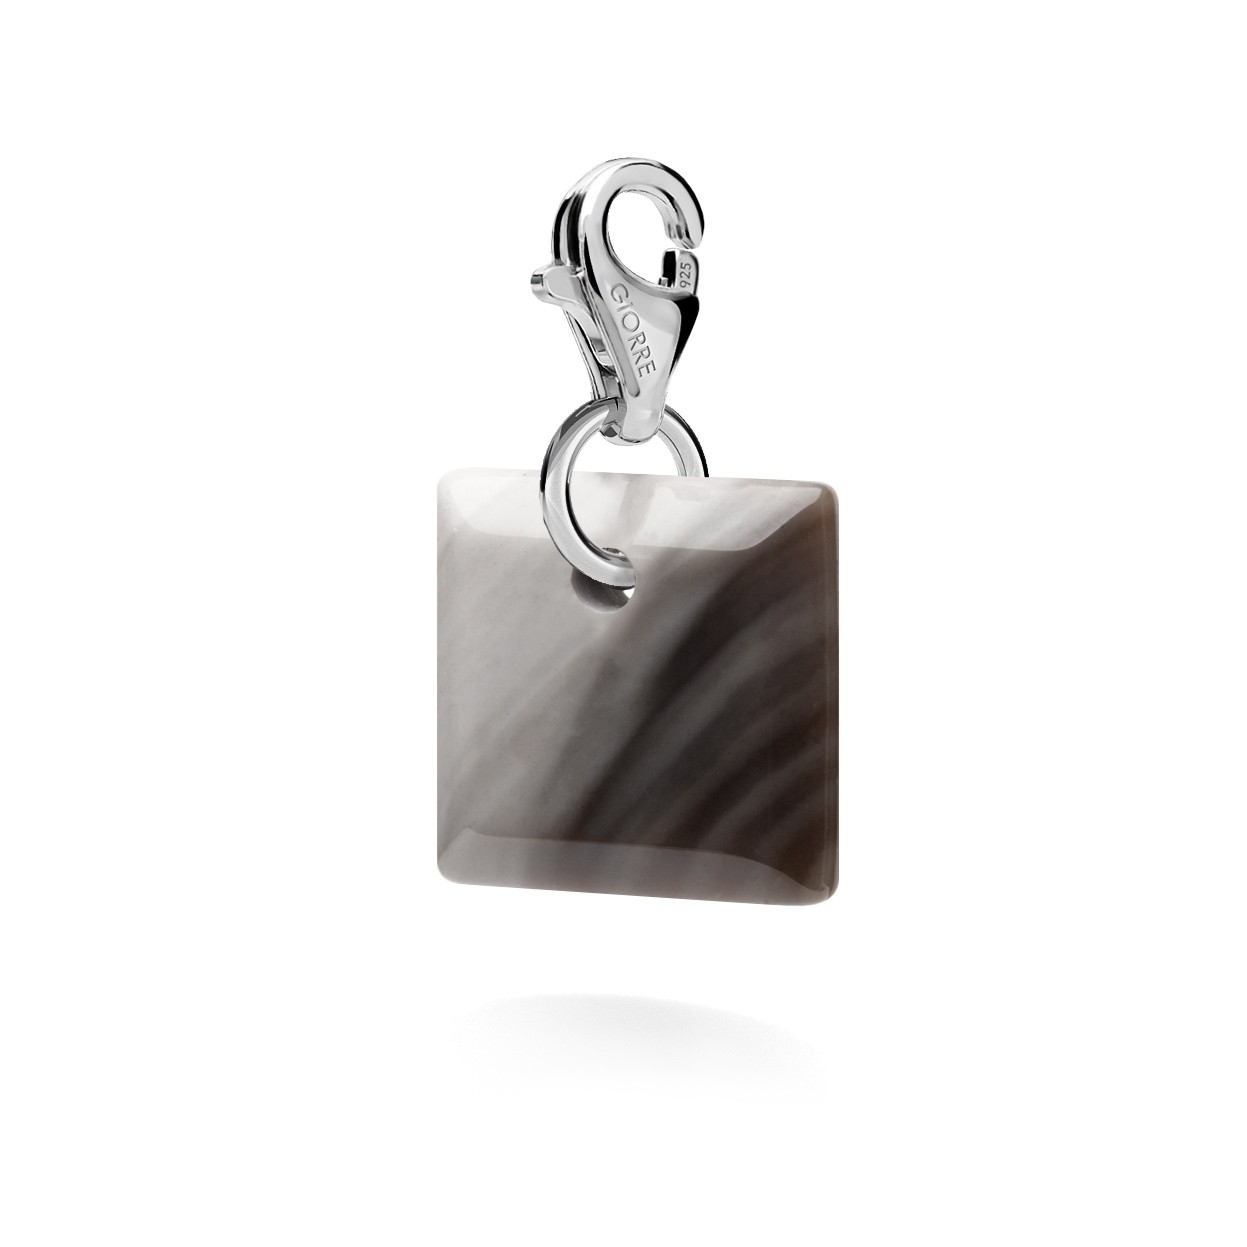 CHARM 85, STRIPED FLINT, SILVER 925,  RHODIUM OR GOLD PLATED